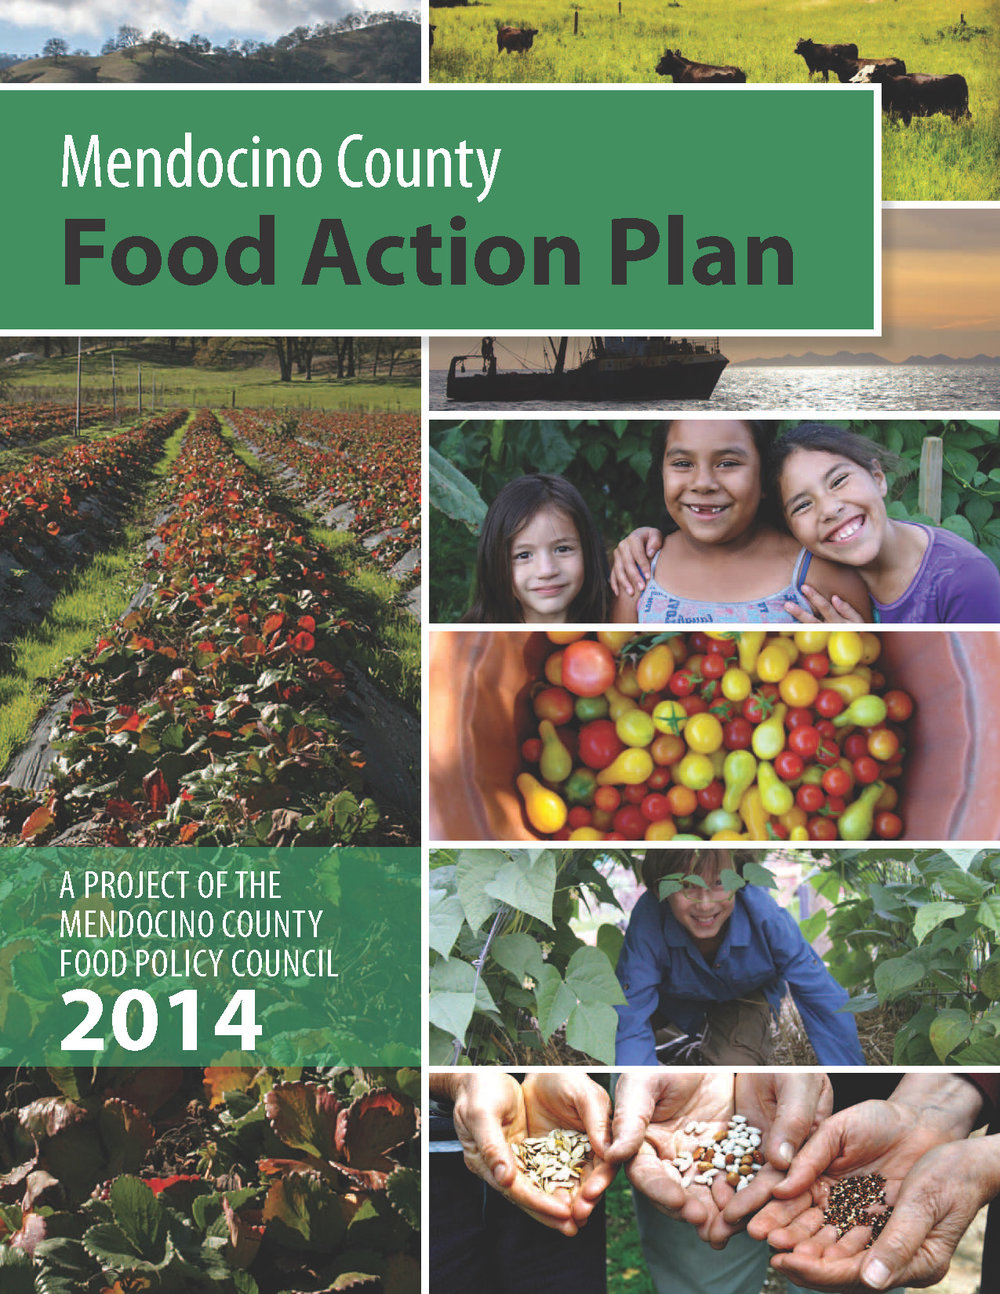 Mendocino County Food Action Plan - The food movement has been an important engine for reinvigorating declining agricultural bases and depressed economies throughout the U.S.. Miles was the lead facilitator of a two-year community engagement process to compile the guiding principles, goals, and actions in the Mendocino County Food Action Plan. KTC helped craft the communications plan for the launch of this living, guiding document for the Mendocino County Food Policy Council and the multiple and diverse stakeholders involved in its formation. This plan continues to drive the process of the regional food movement.